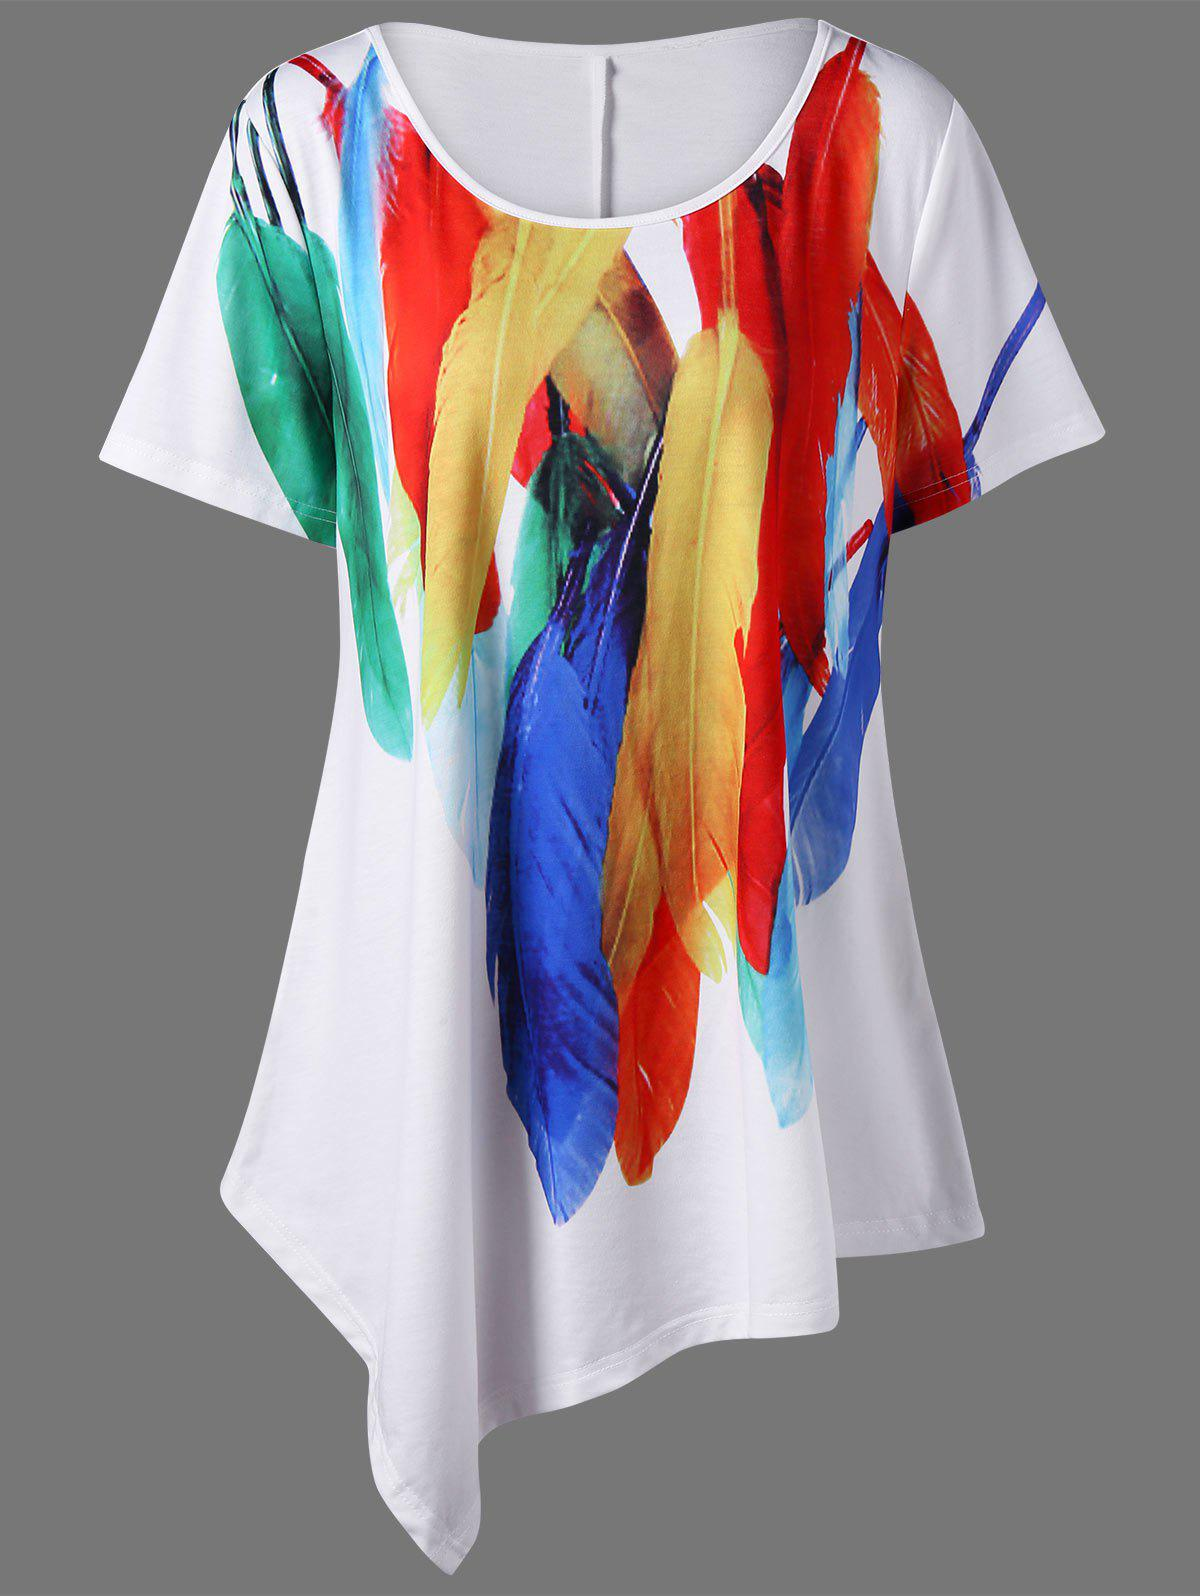 Plus Size Long Feather Print Asymmetric T-ShirtWOMEN<br><br>Size: 3XL; Color: WHITE; Material: Polyester,Spandex; Shirt Length: Long; Sleeve Length: Short; Collar: Scoop Neck; Style: Casual; Season: Summer; Pattern Type: Feather; Weight: 0.2900kg; Package Contents: 1 x T-Shirt;